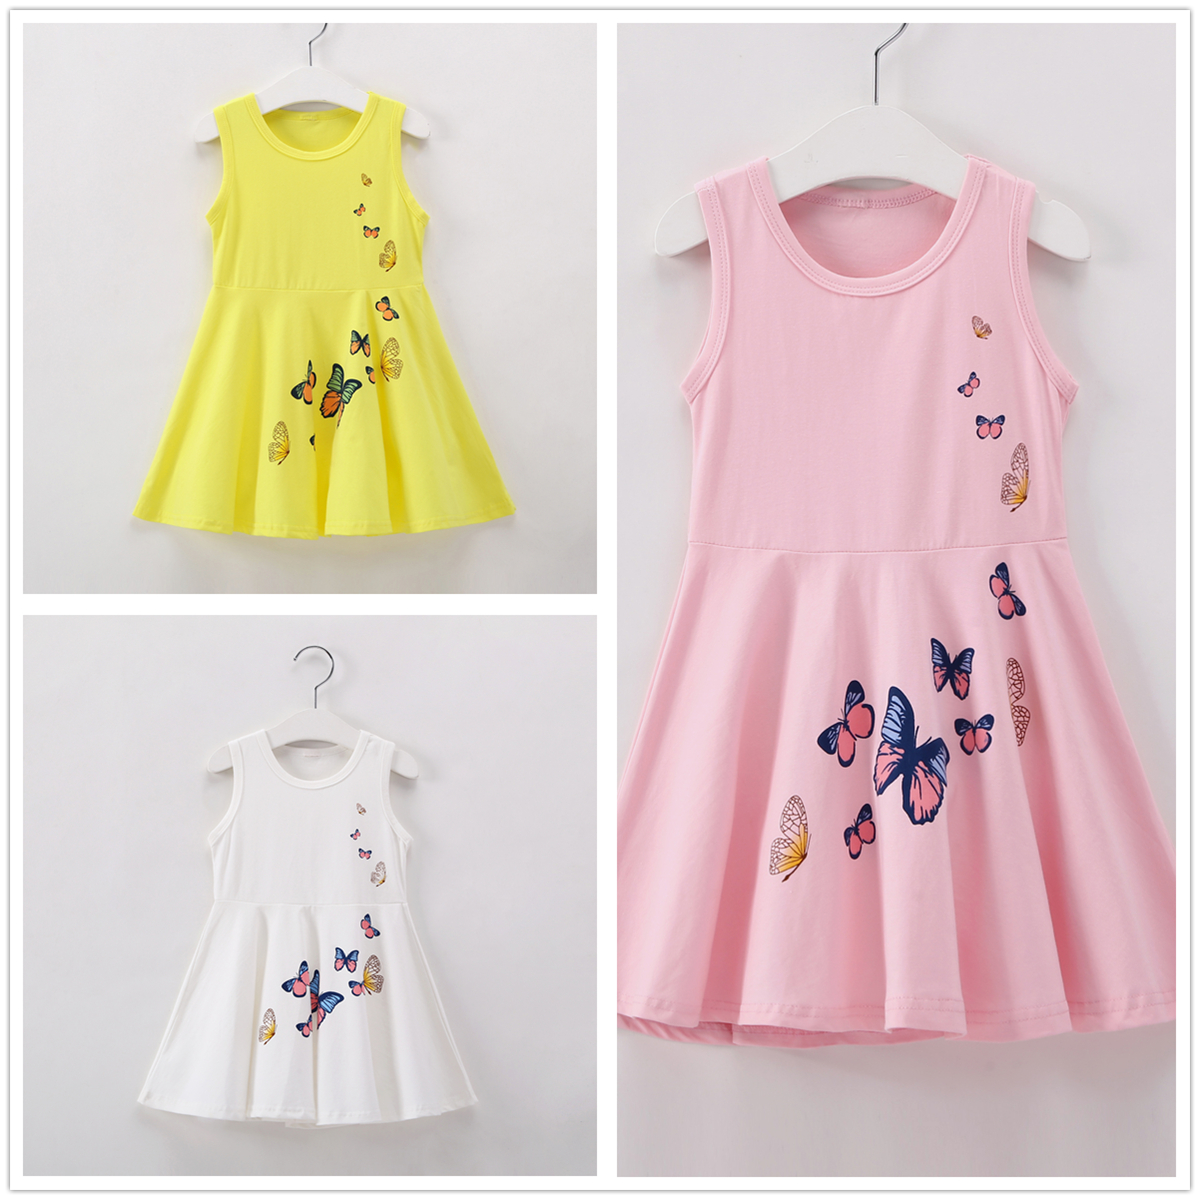 2-7Y Kids Girl Dress Summer Birthday Girls White Princess Dress Toddler Cotton Clothes Yellow Children Clothing Pink Butterfly 2017 new toddler kids girls summer dress off shoulder ruffles lace dresses solid white baby girl clothes princess costume 2 7y